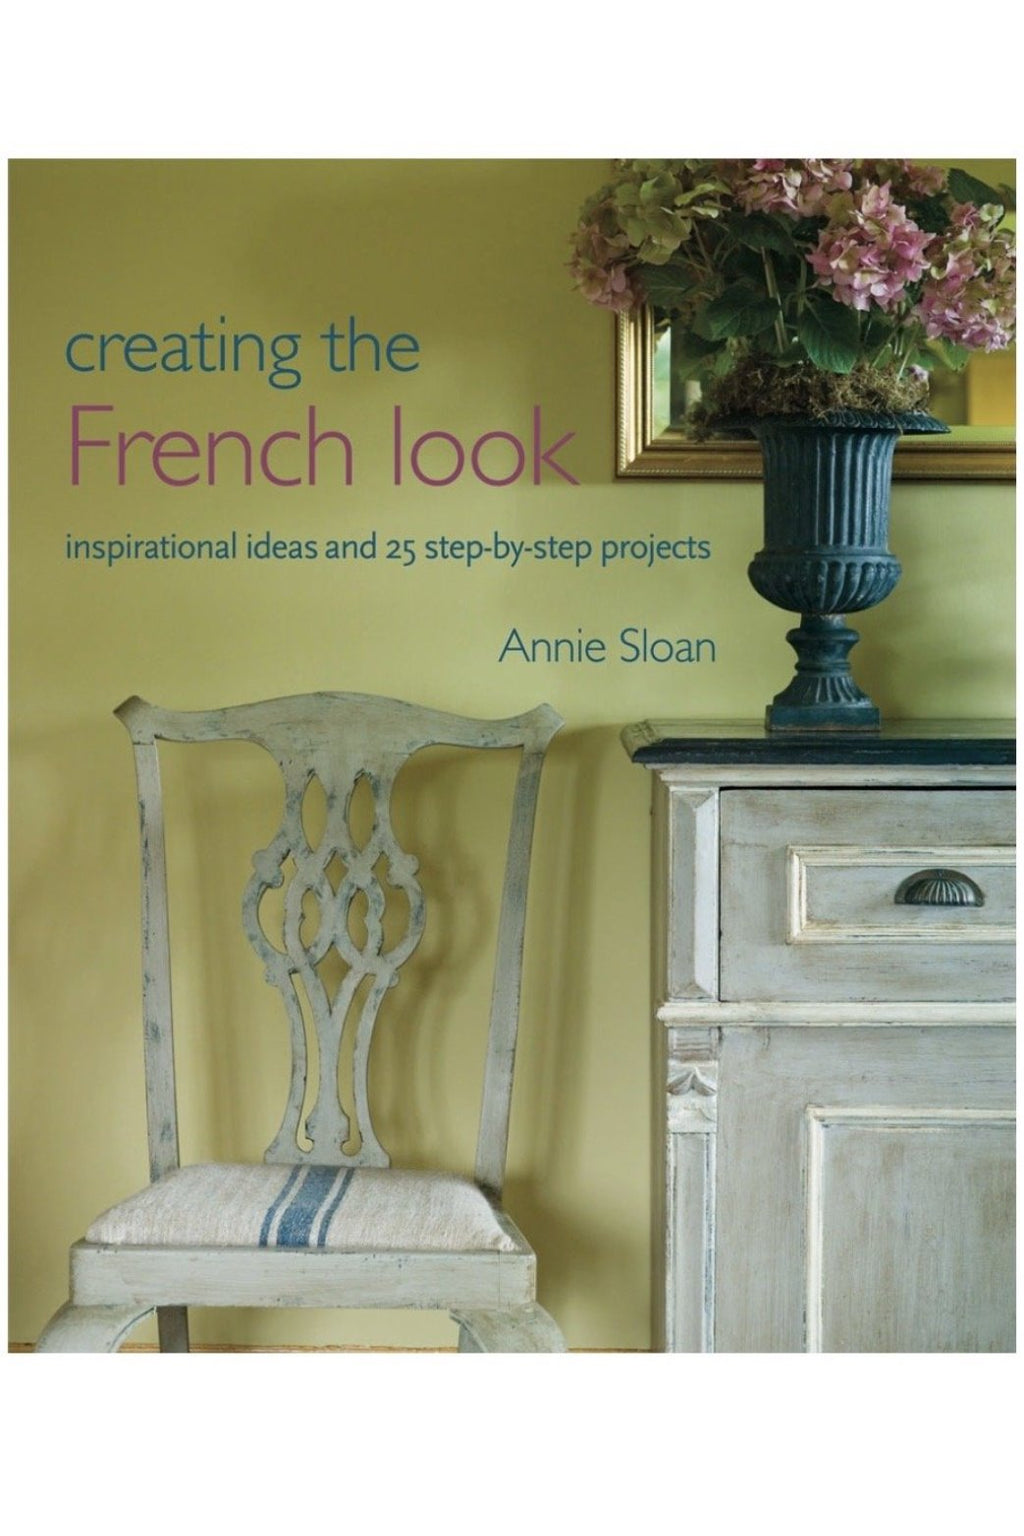 Creating the French Look by Annie Sloan